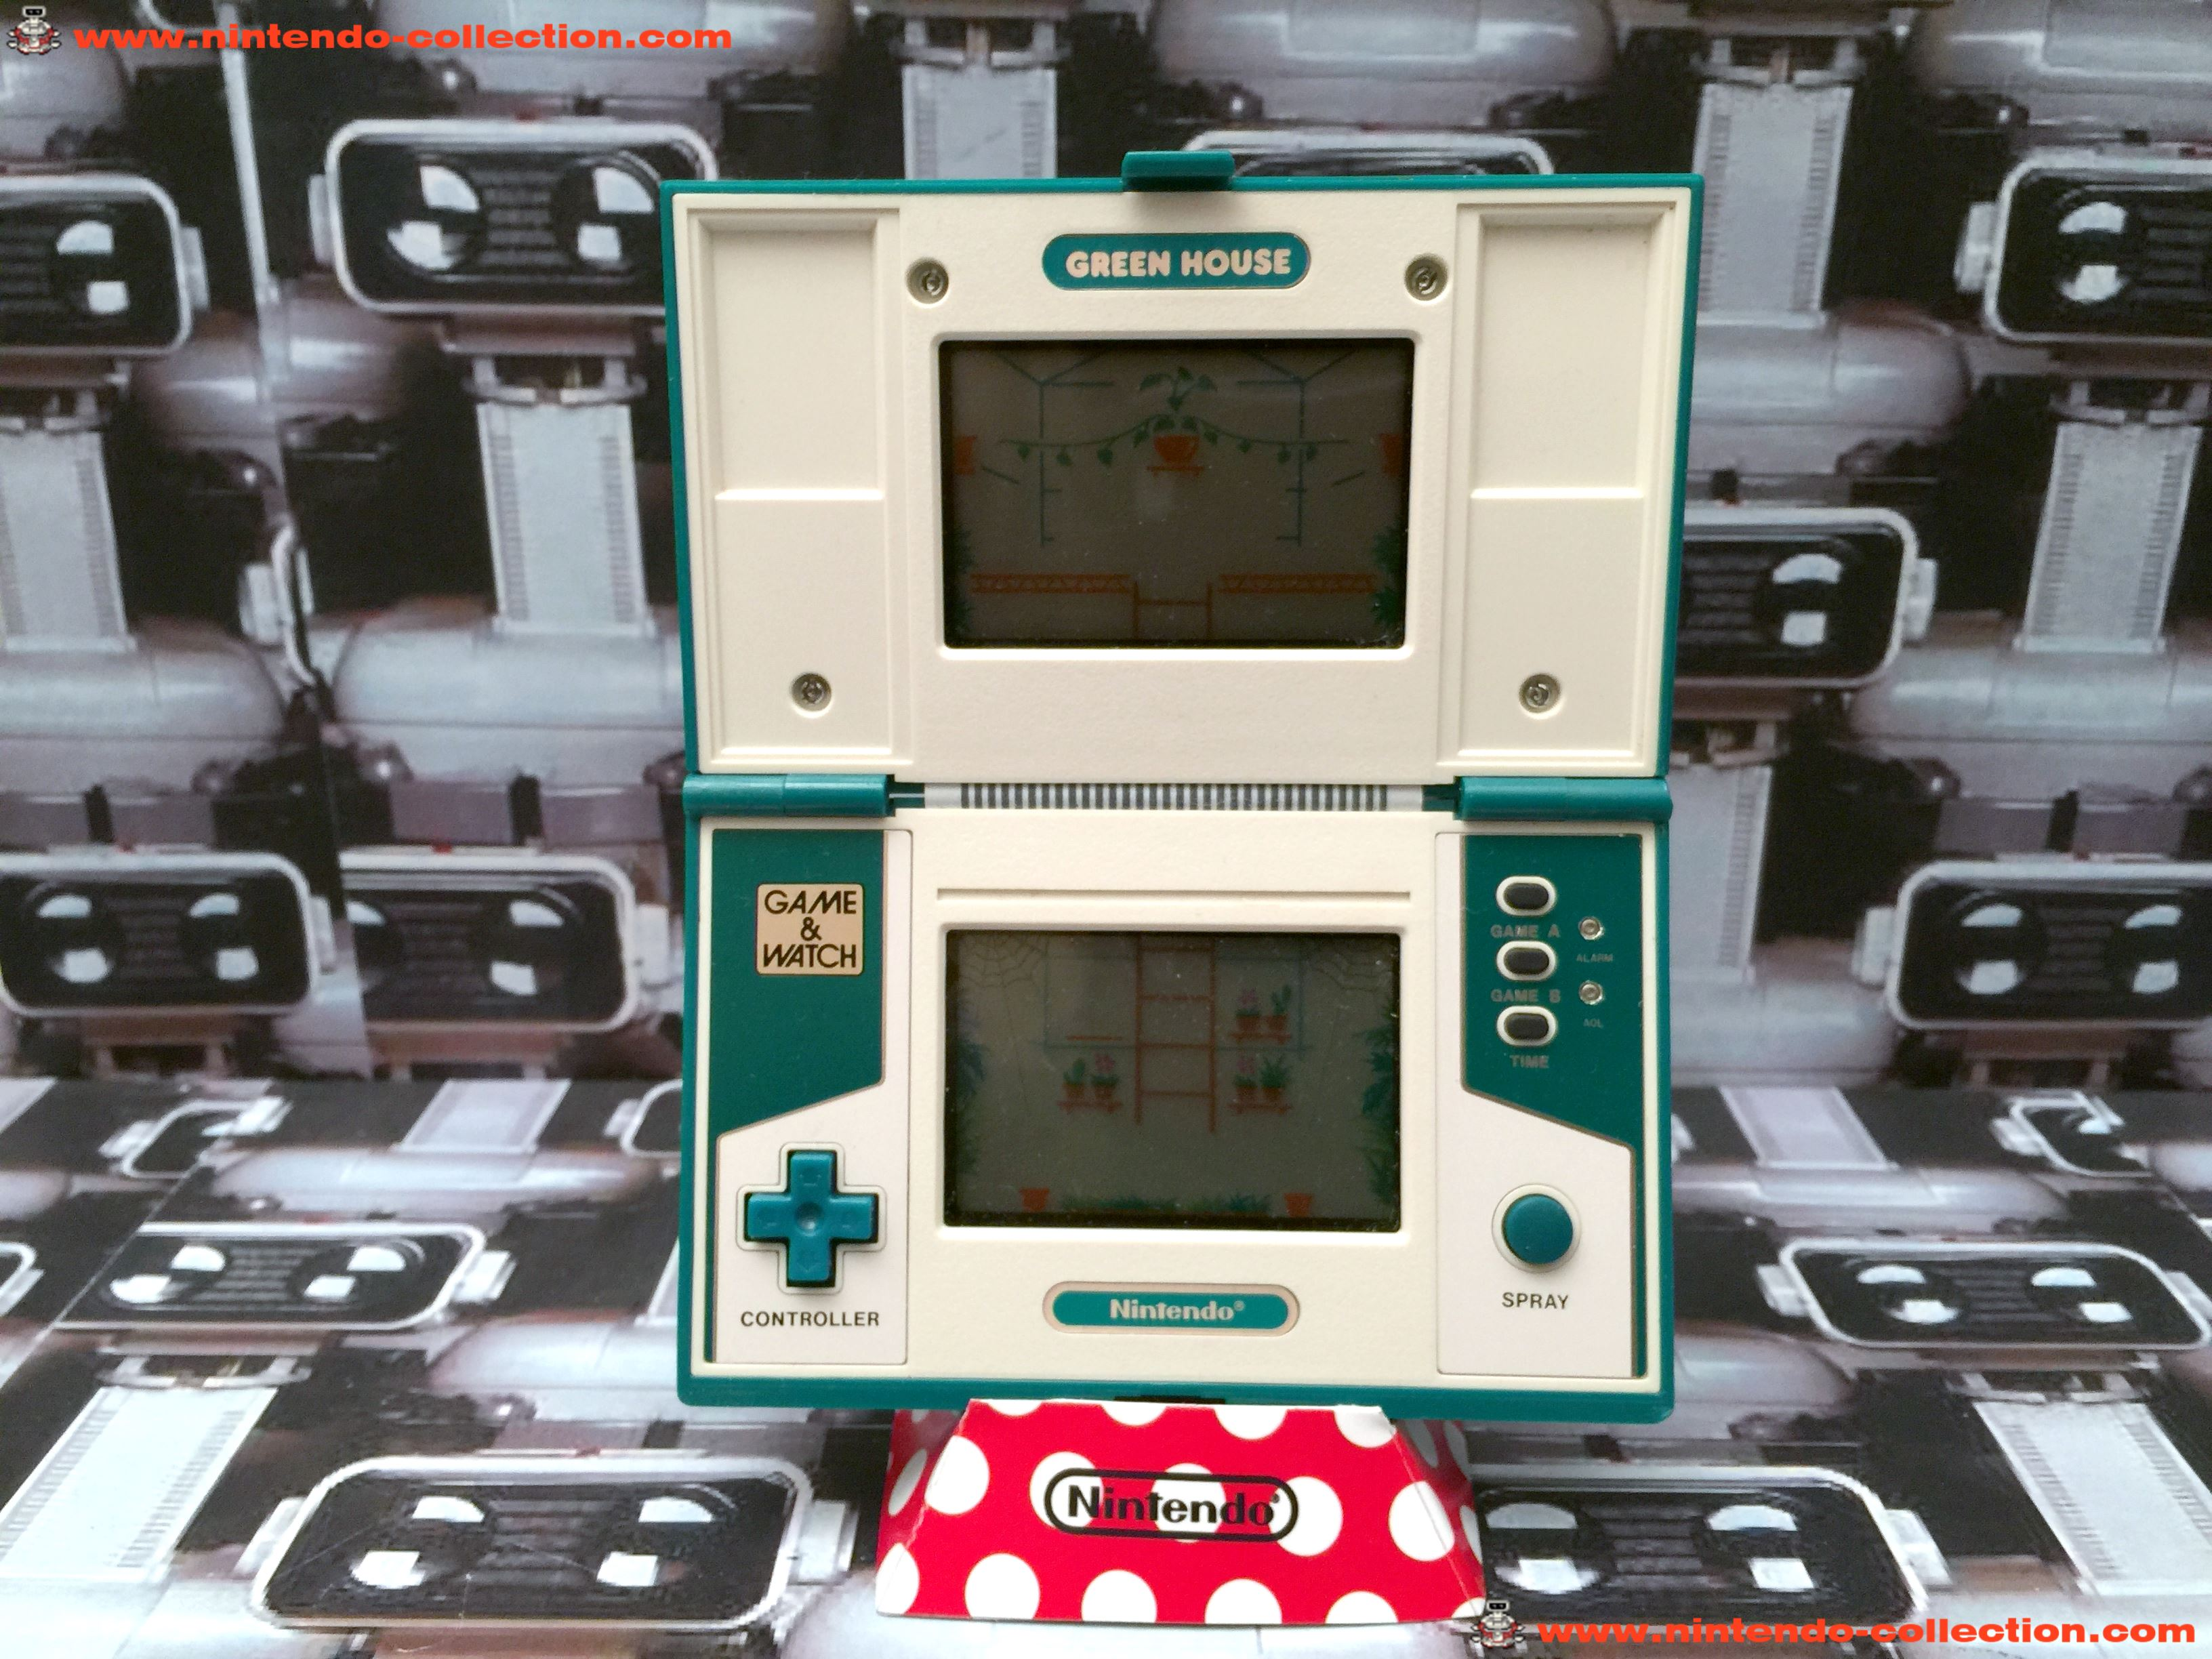 www.nintendo-collection.com - Game & Watch Multi Screen Green House - 02